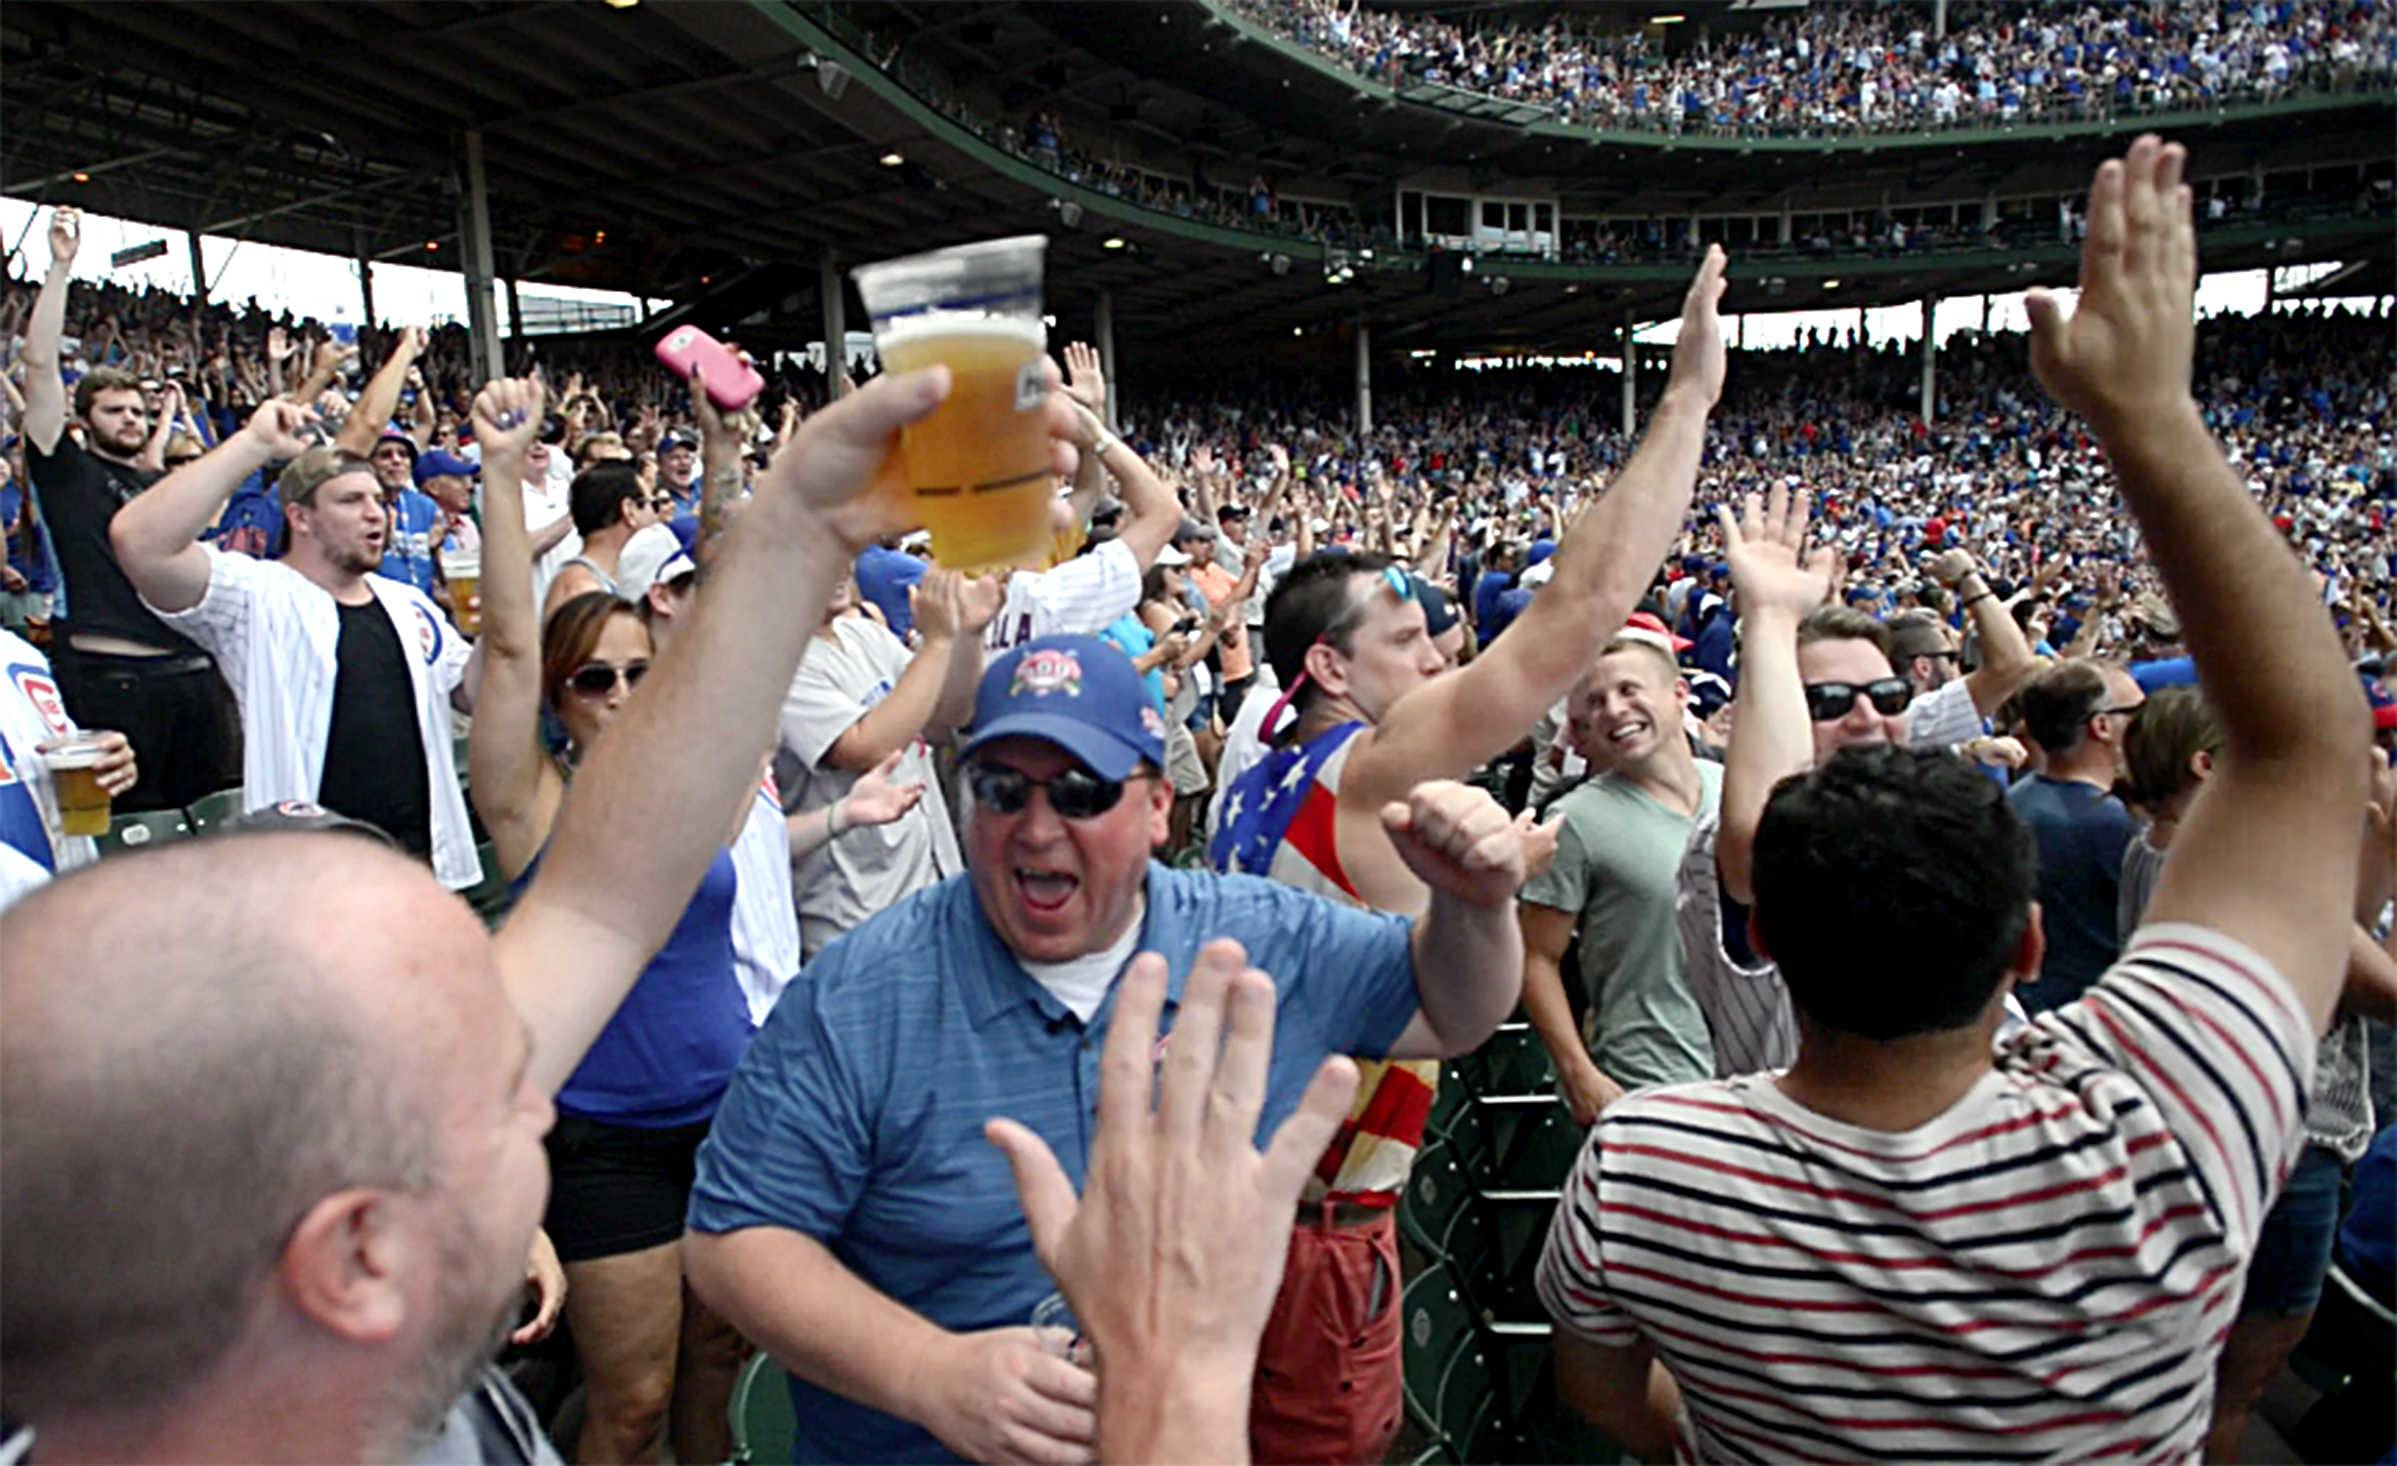 Cubs fan Stewart McVicar, center, celebrates an Anthony Rizzo home run during an Aug. 13 game at Wrigley Field in Chicago. At lower left is McVicar's good friend since childhood, Bob Cashin.